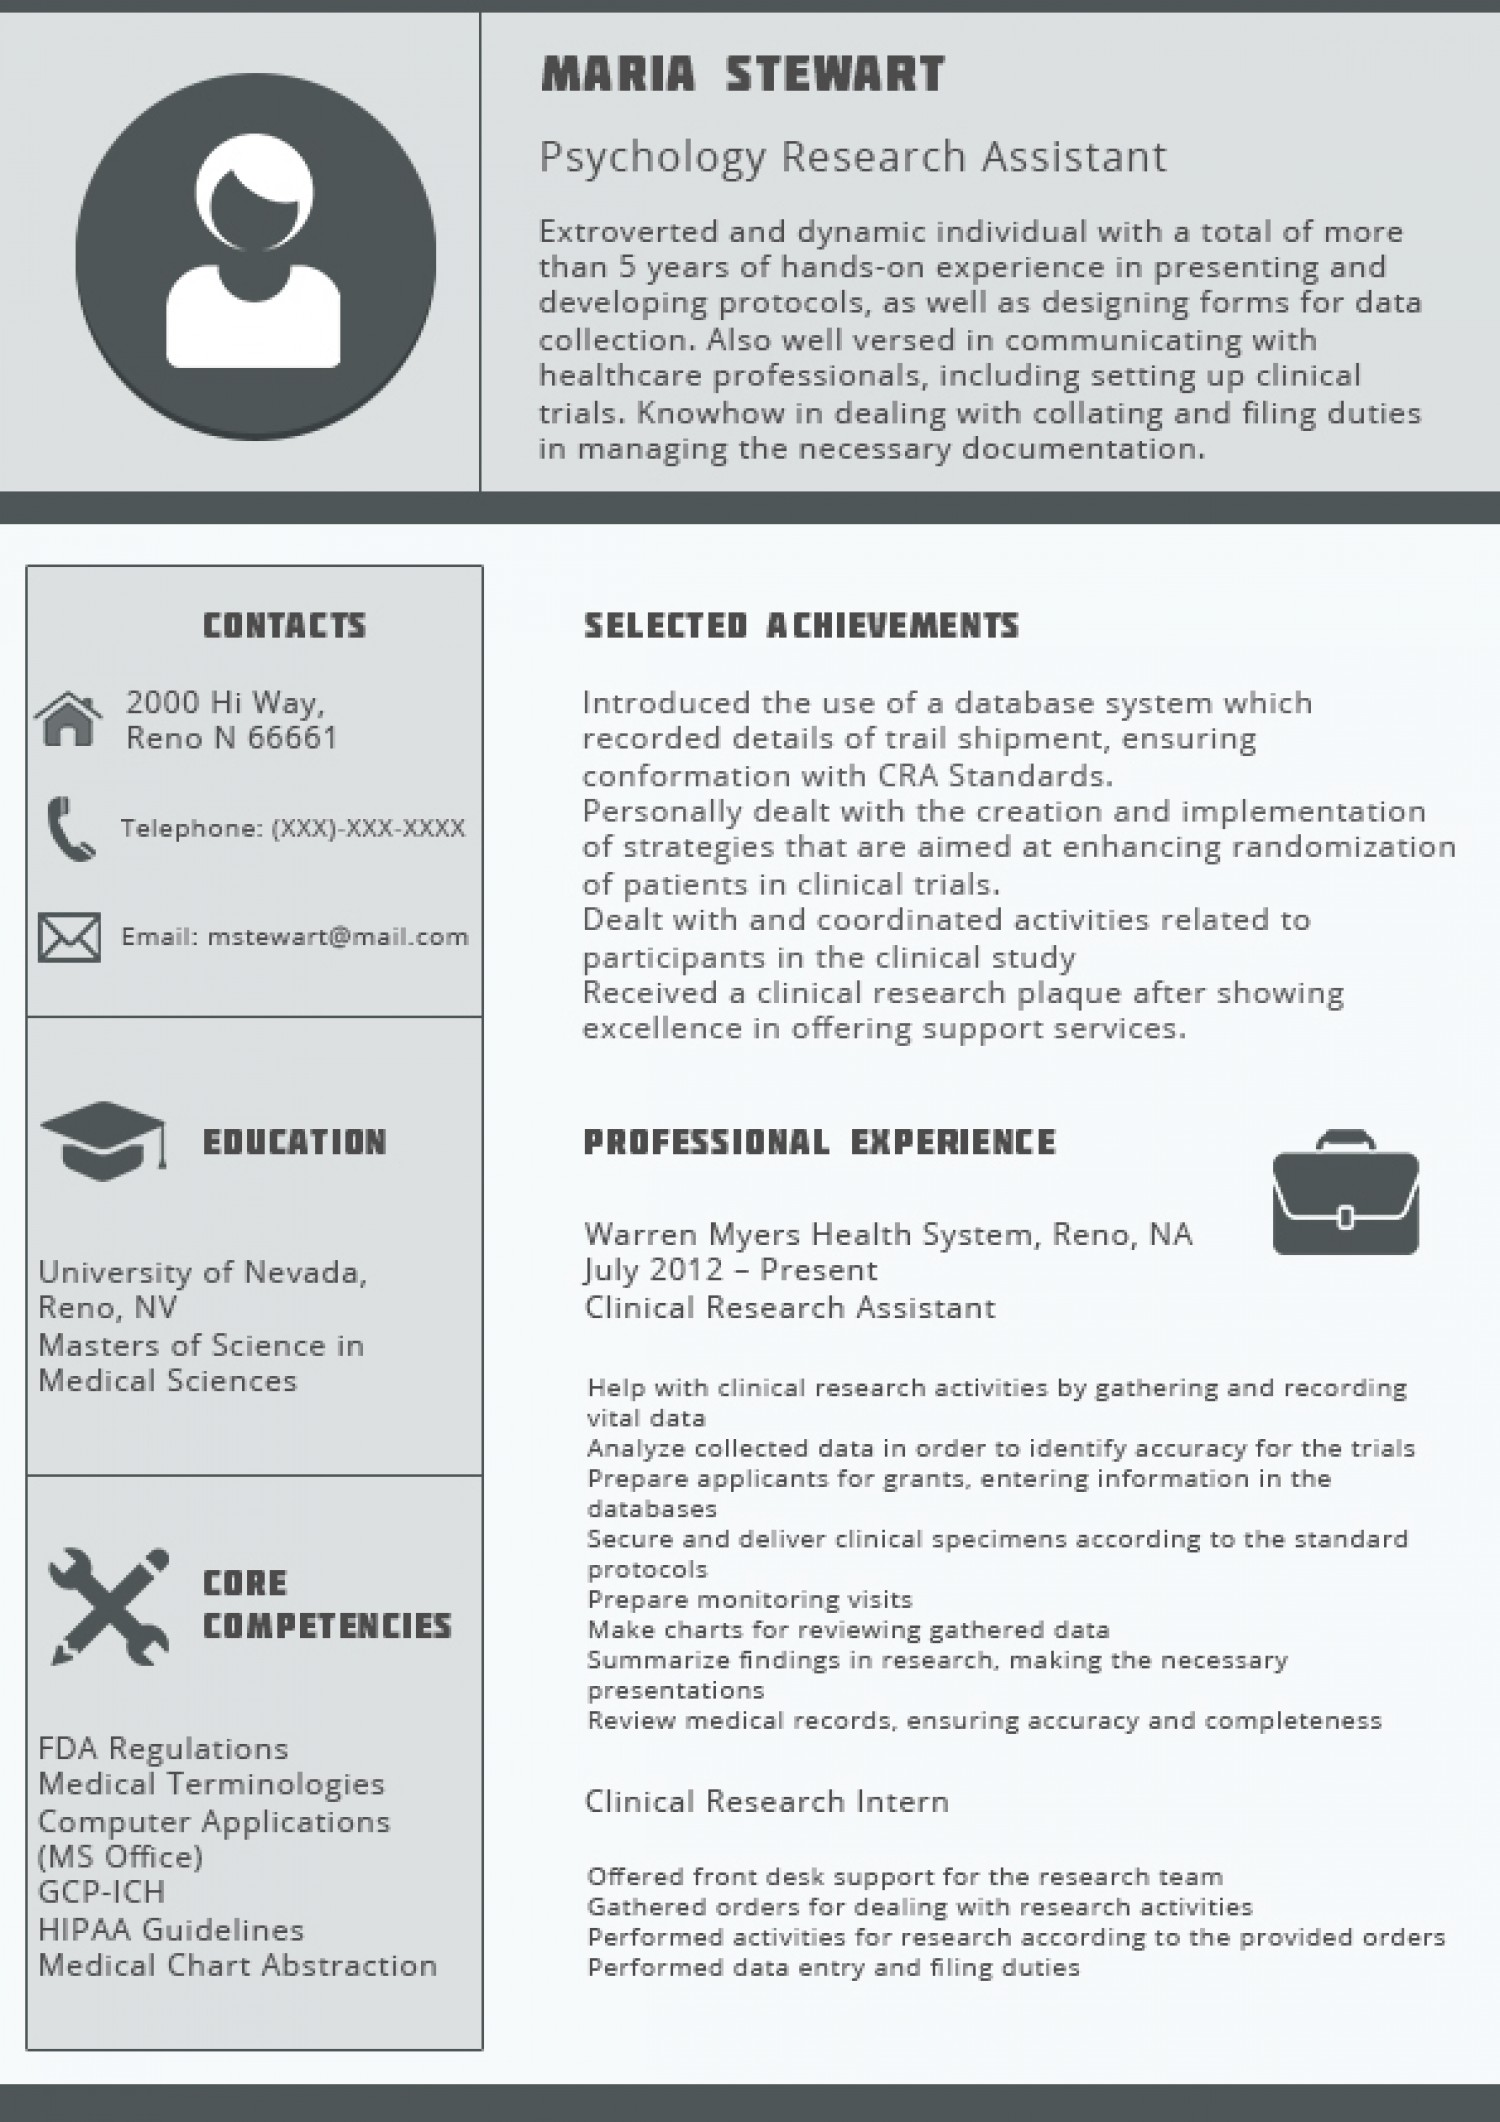 Best top resume format 2016 Which one to choose in 2016